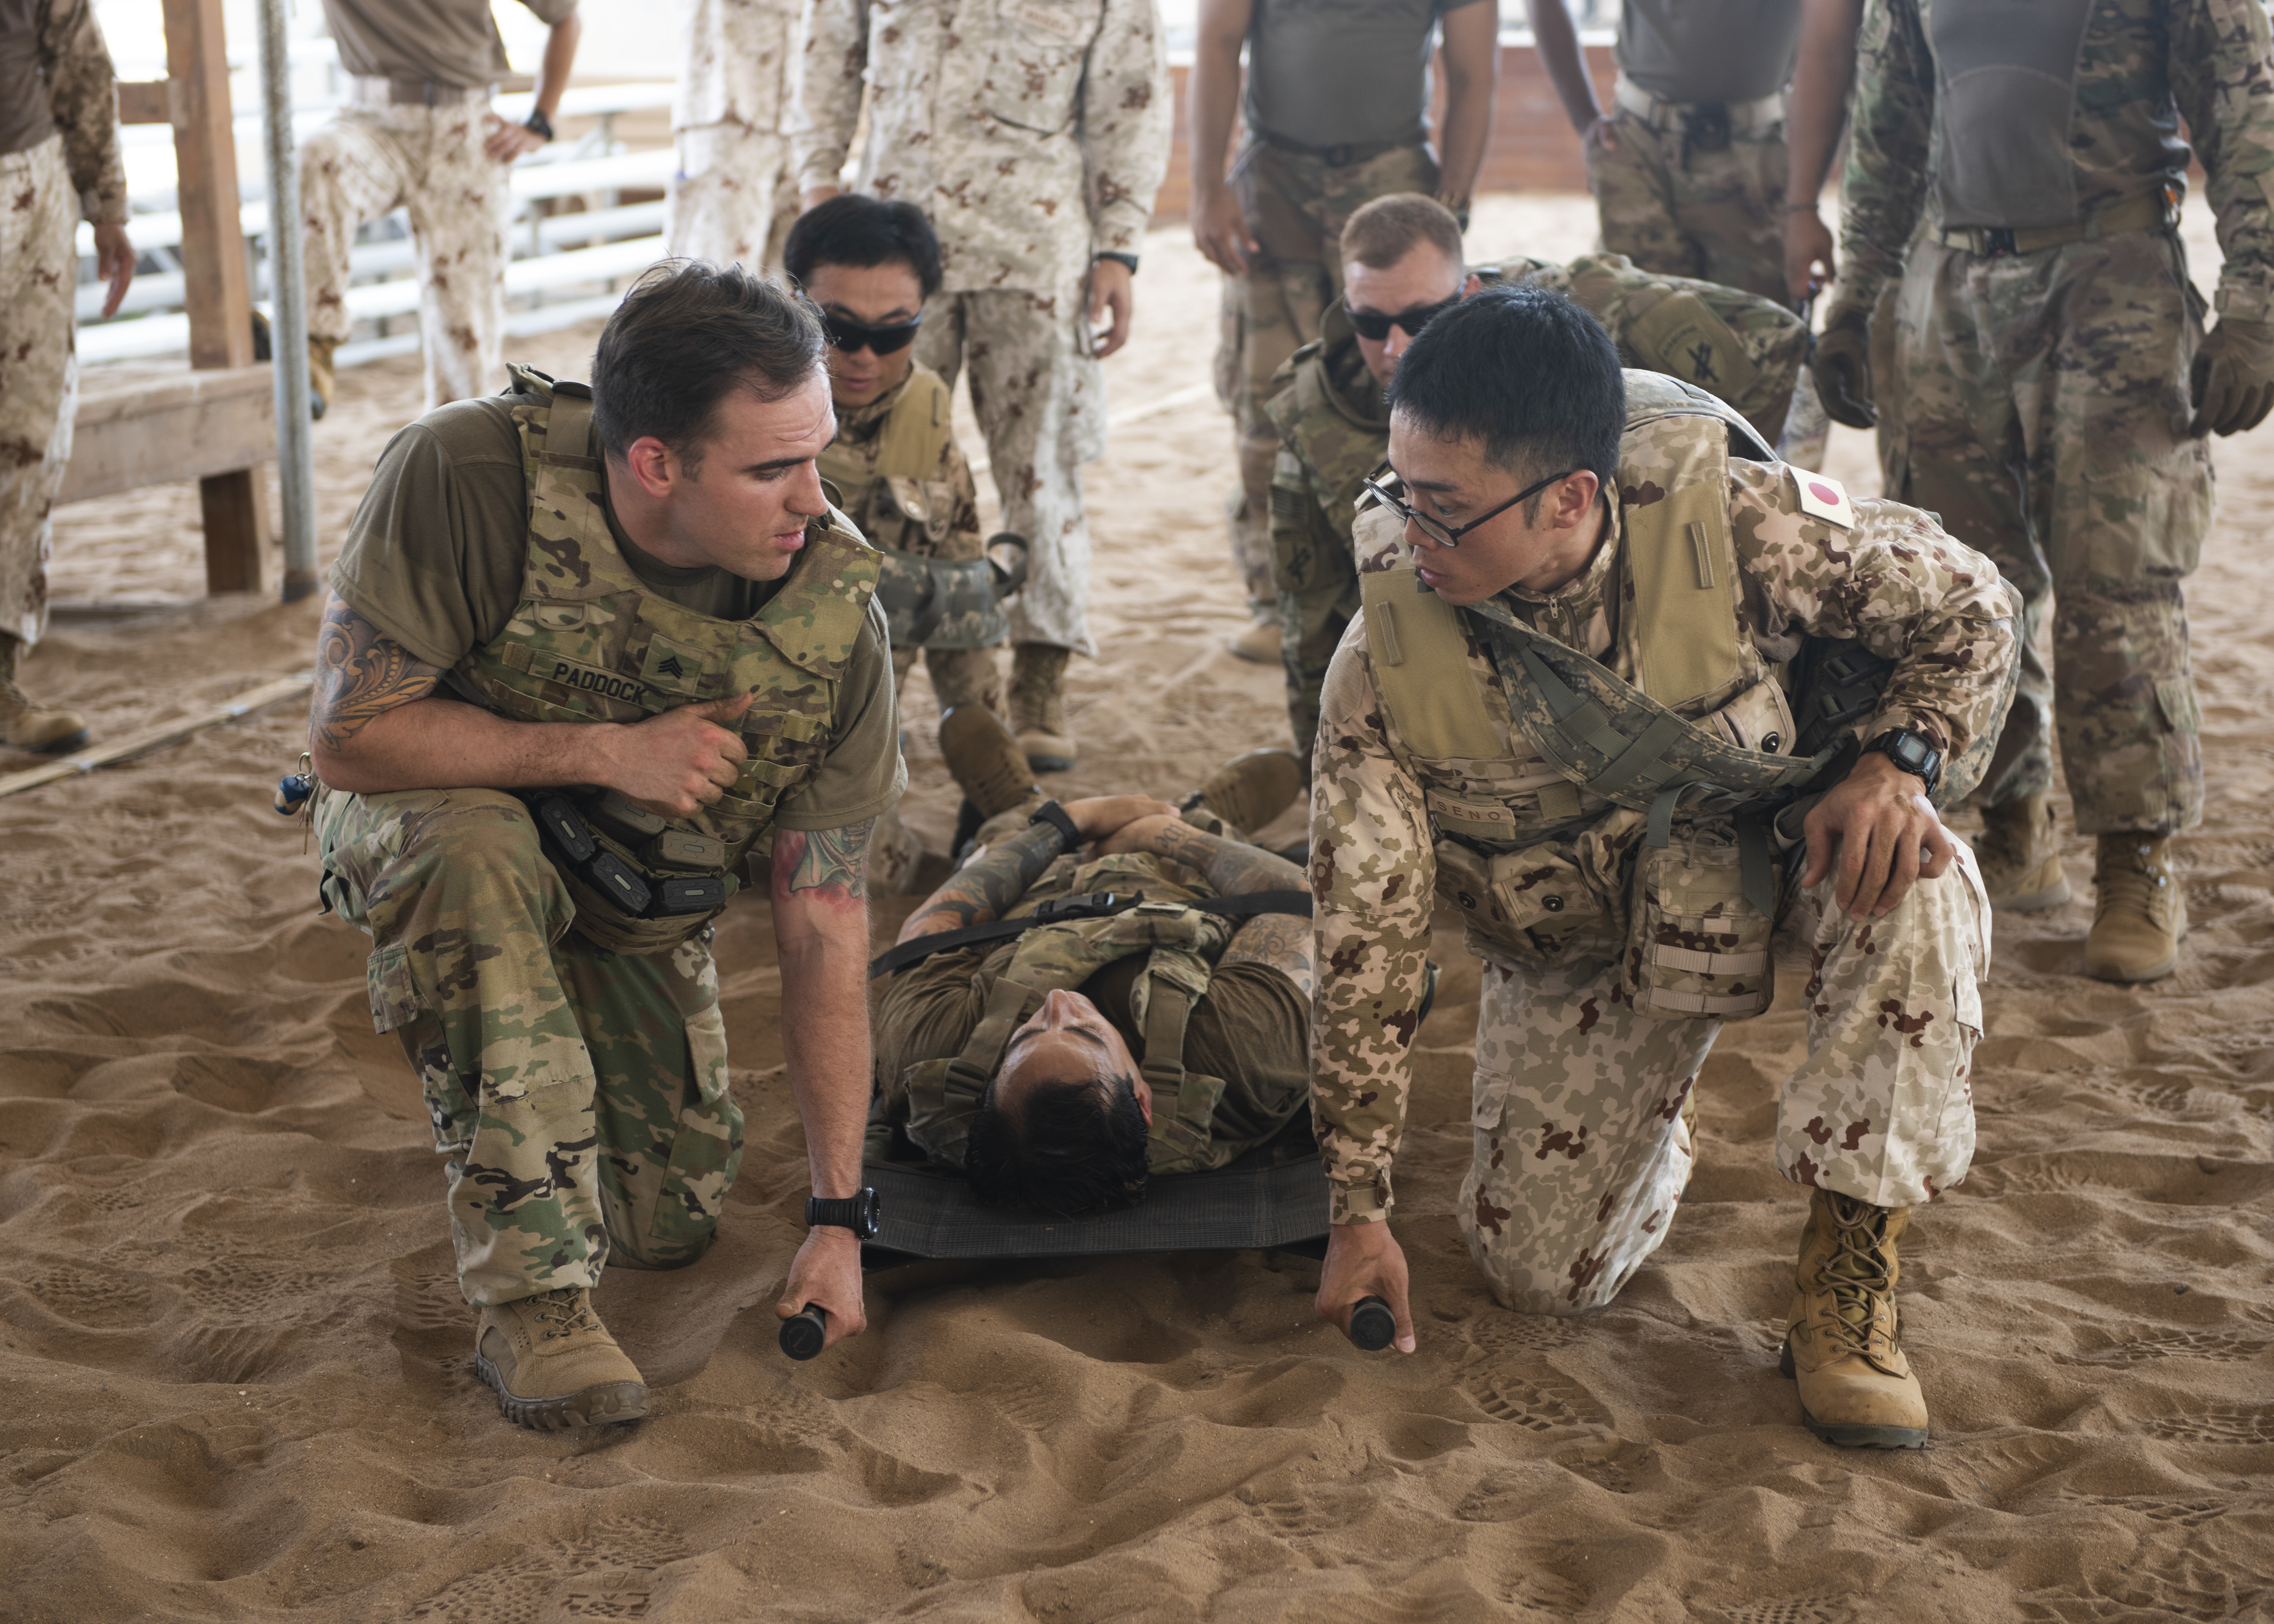 U.S. Army Soldiers assigned to Combined Joint Task Force-Horn of Africa and Japanese Ground Self-Defense Force soldiers prepare to carry a victim during a tactical combat casualty care (TCCC) medical exchange at Camp Lemonnier, Djibouti, June 3, 2019. TCCC provided partner nation soldiers an opportunity to share different methods on how to conduct life-saving medical care on a battlefield. (U.S. Air Force photo by Staff Sgt. Franklin R. Ramos)